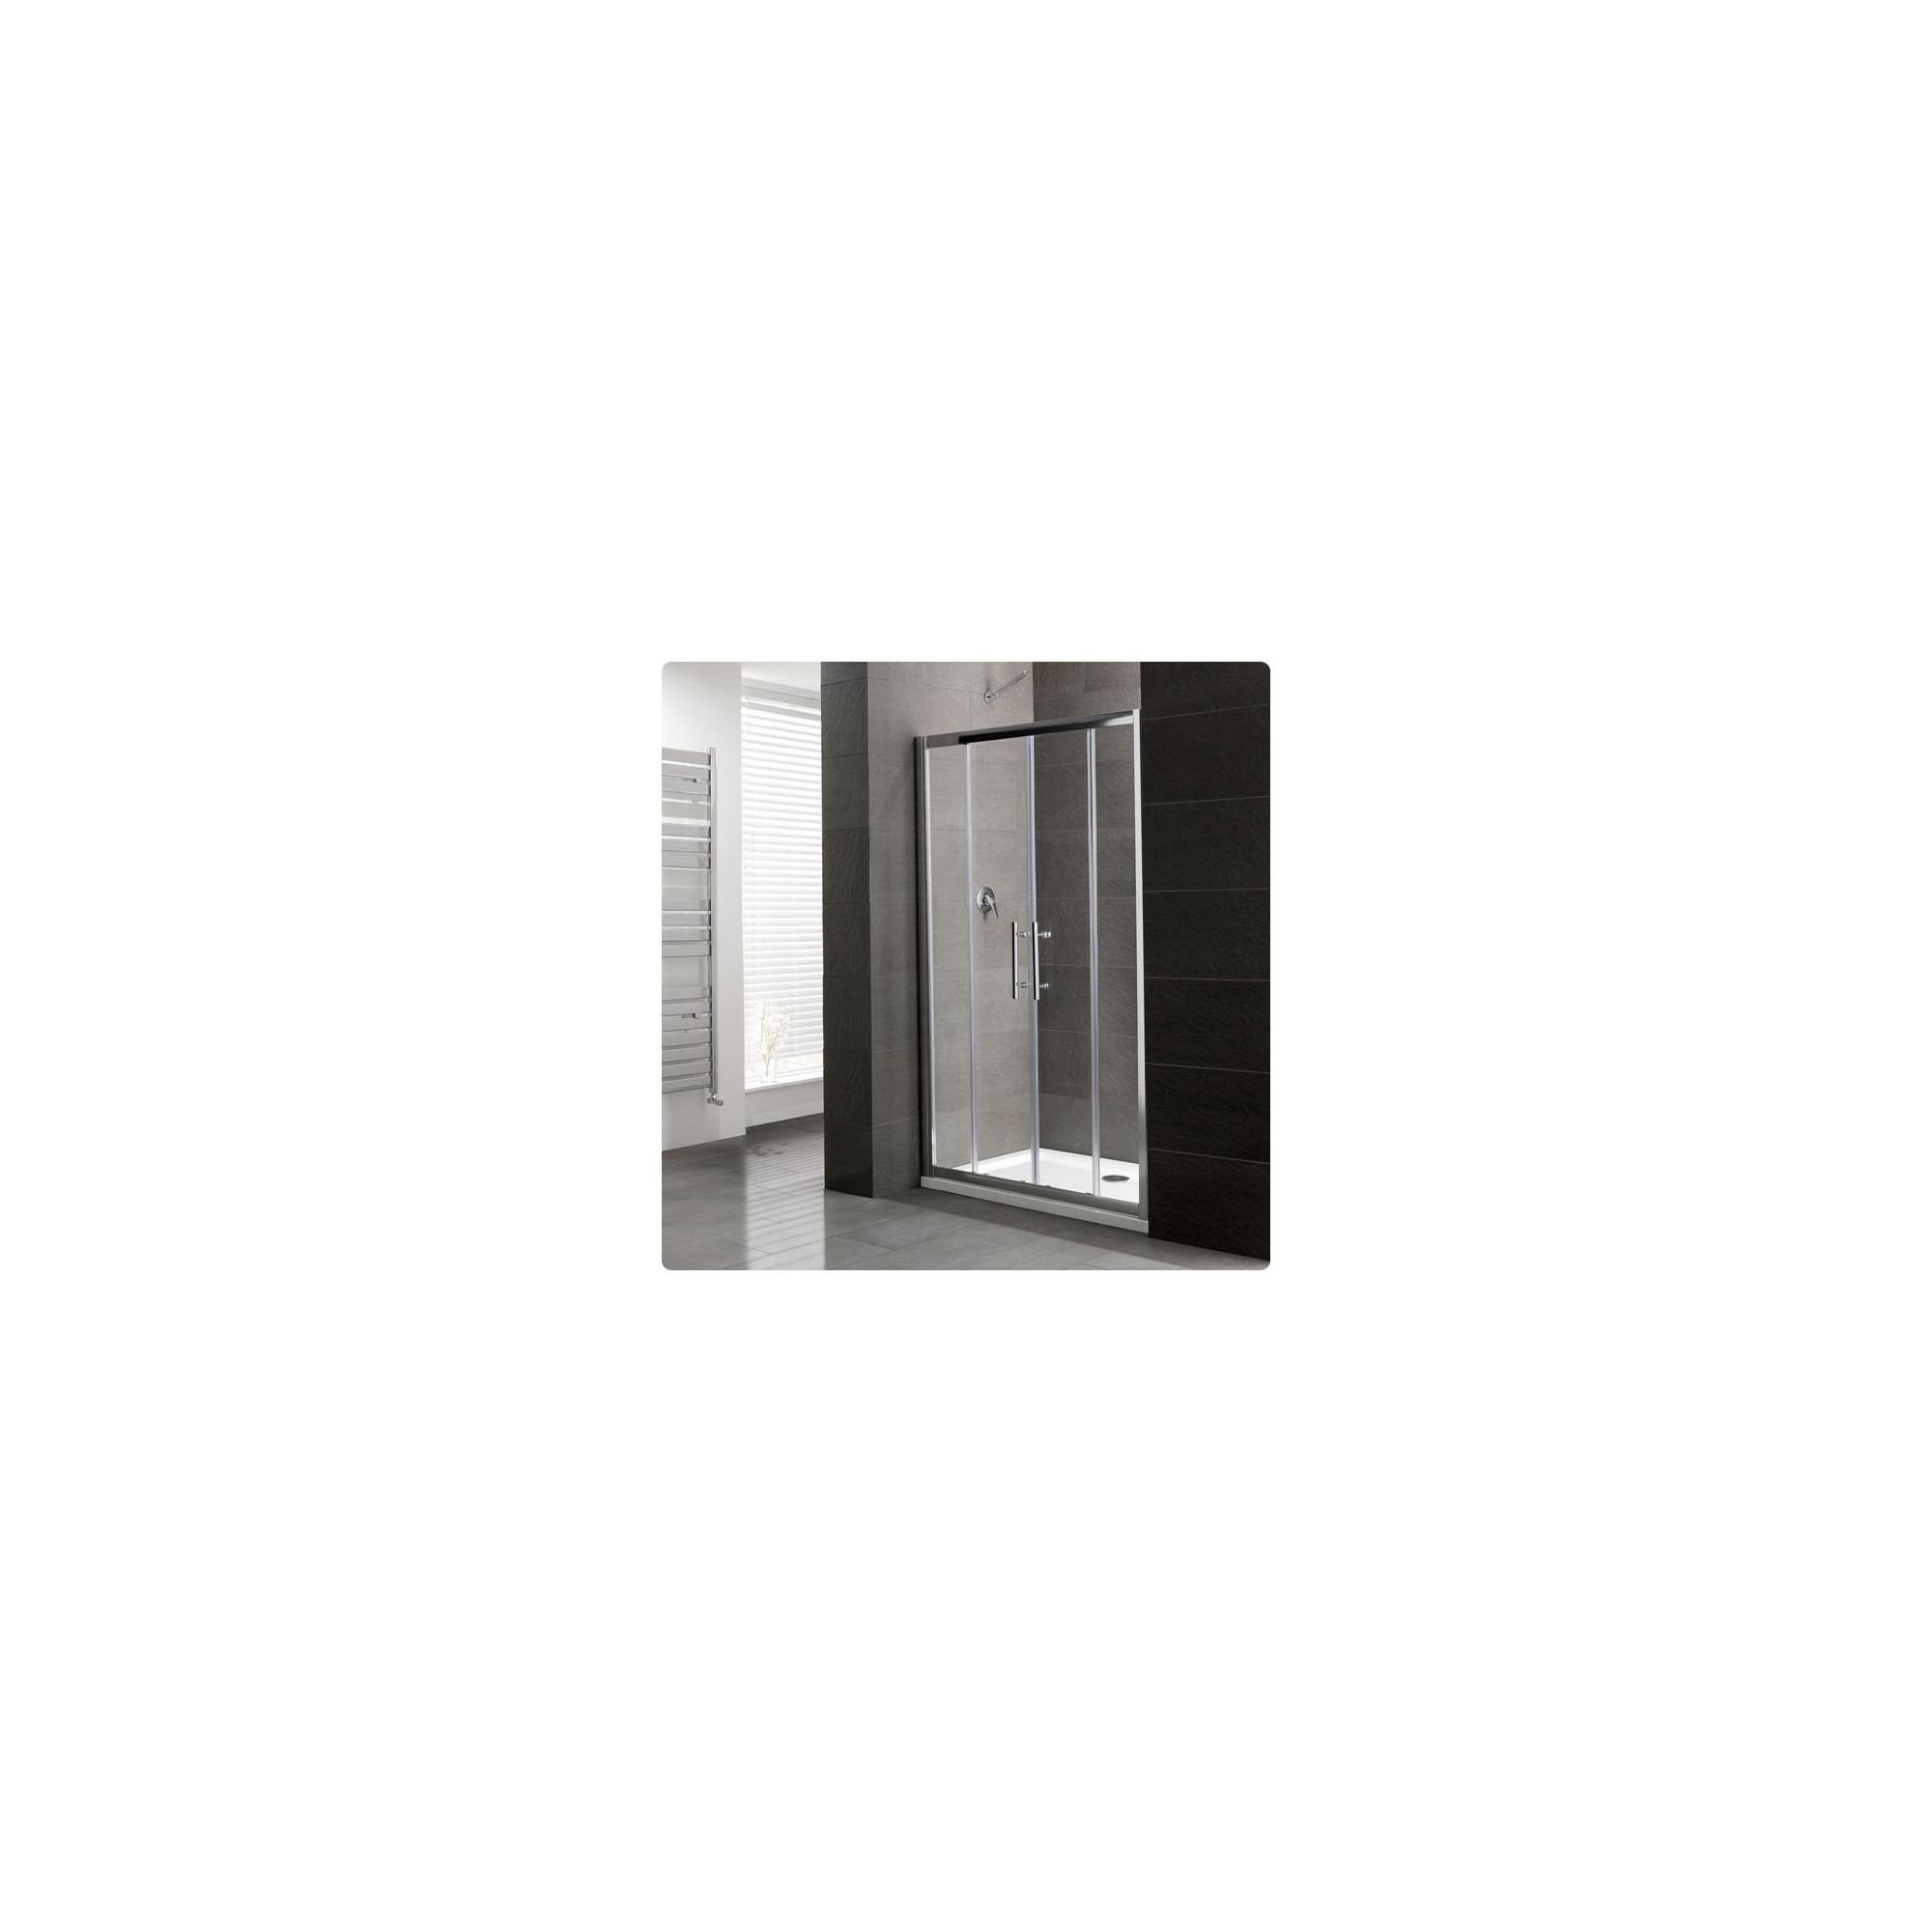 Duchy Select Silver Double Sliding Door Shower Enclosure, 1700mm x 700mm, Standard Tray, 6mm Glass at Tesco Direct